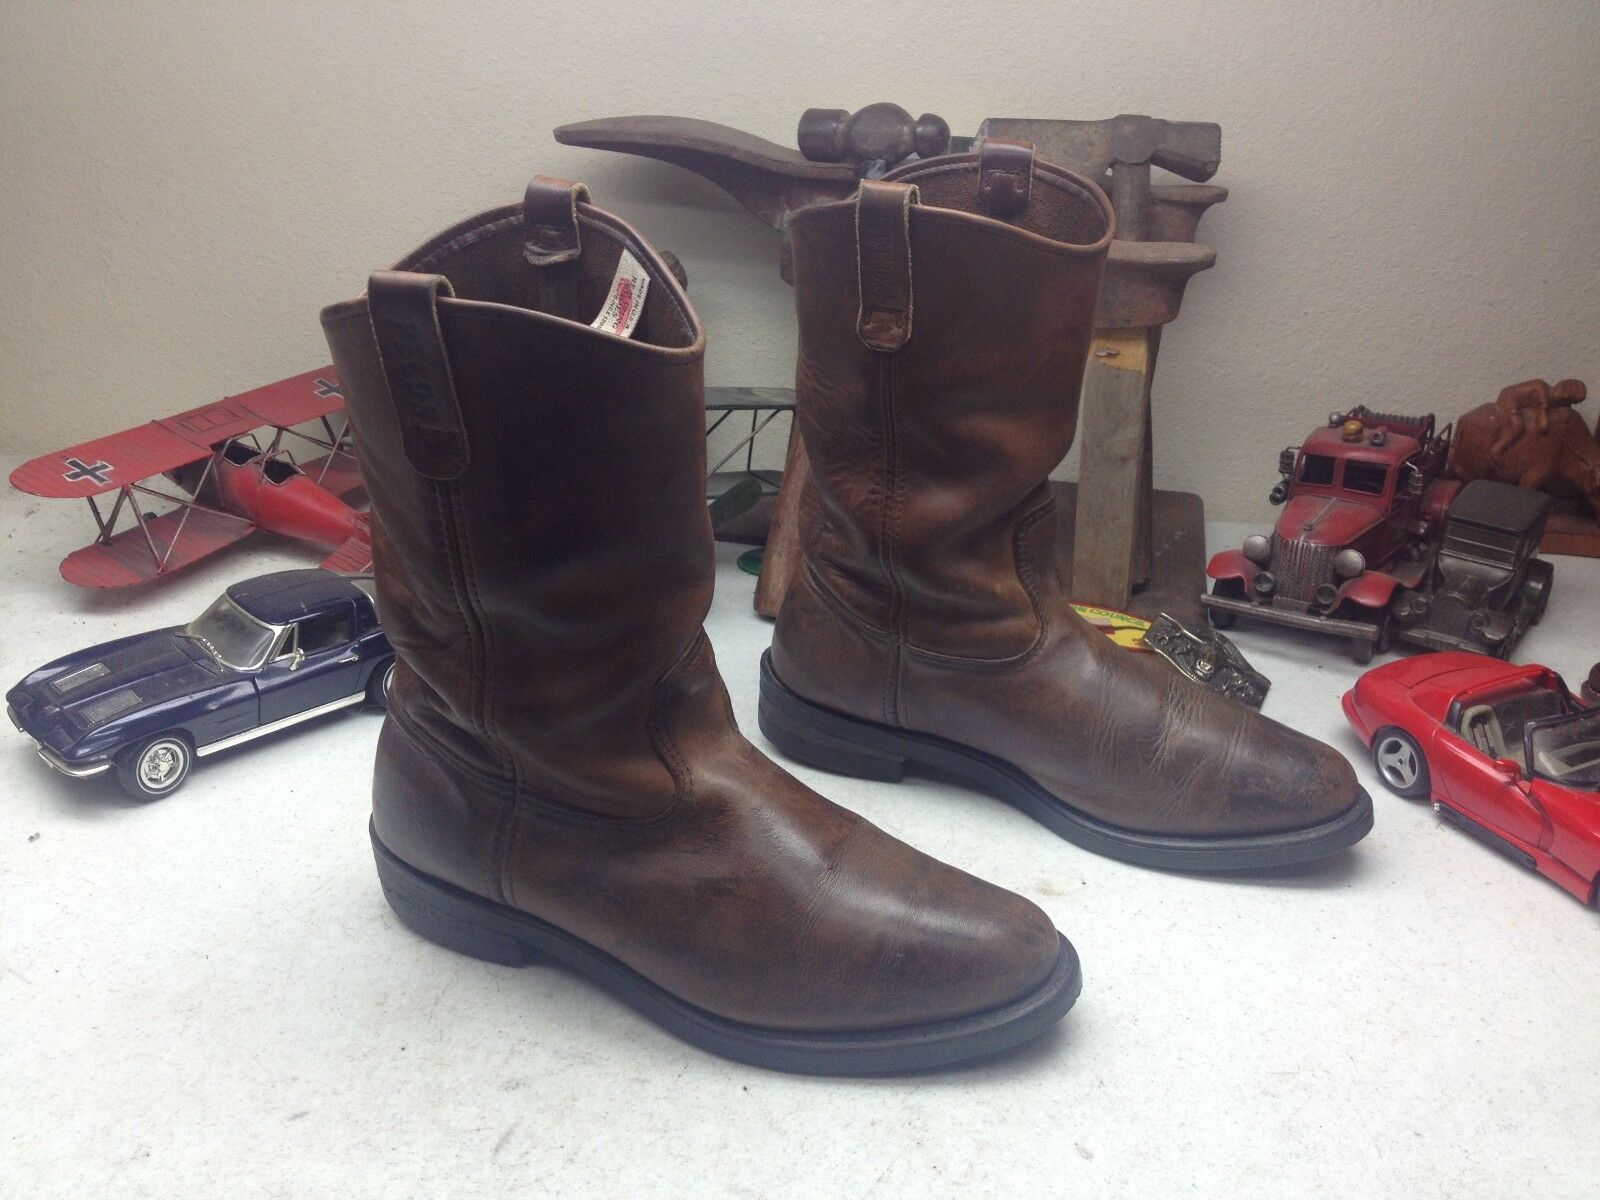 VINTAGE 2000 ROT WING USA BROWN LEATHER ENGINEER TRAIL D BOSS ROAD Stiefel 10.5 D TRAIL a2804c